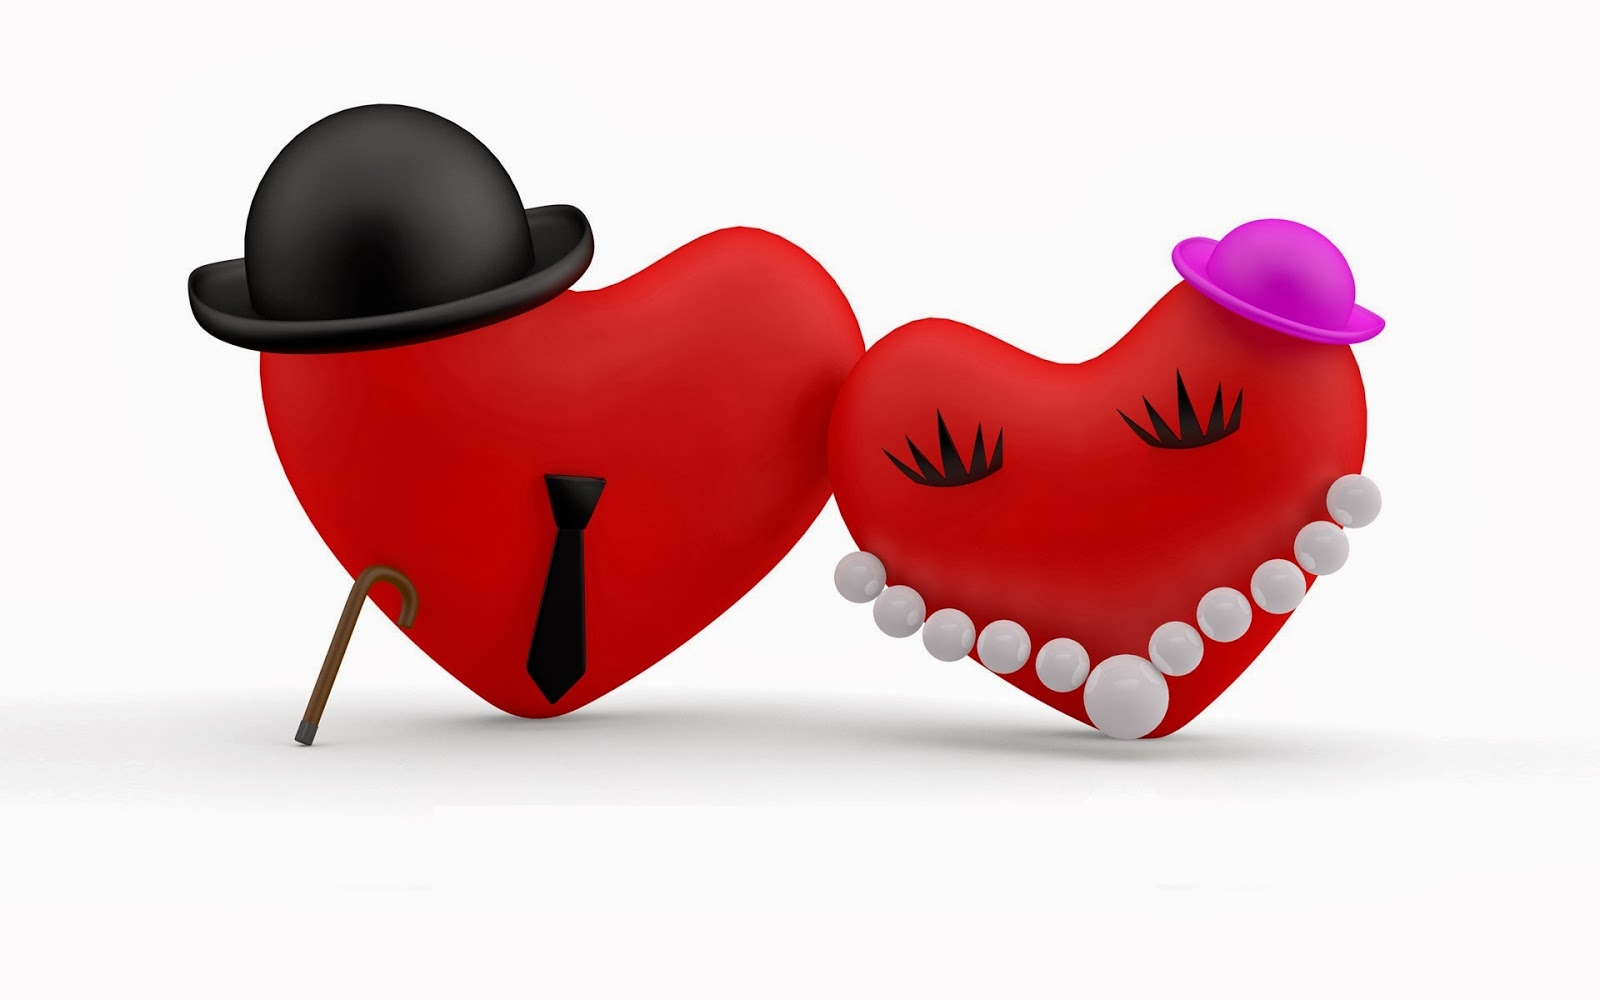 Free Download Love Heart Hd Wallpapers And Images Couple Of Heart